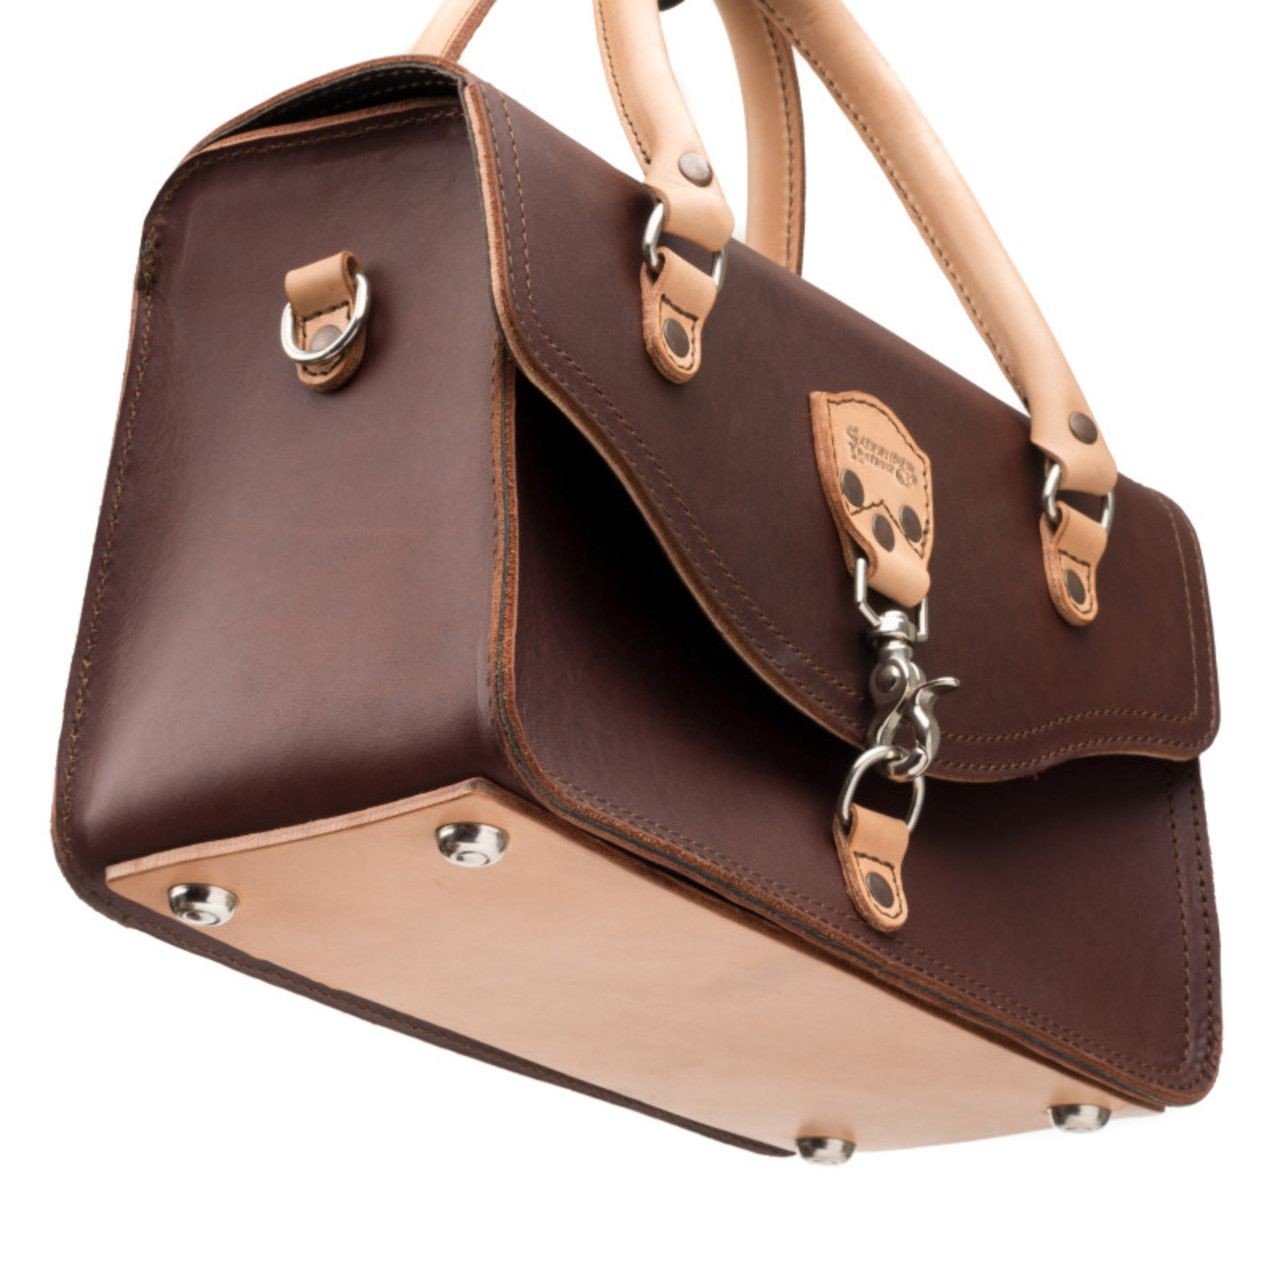 leather satchel purse in chestnut leather